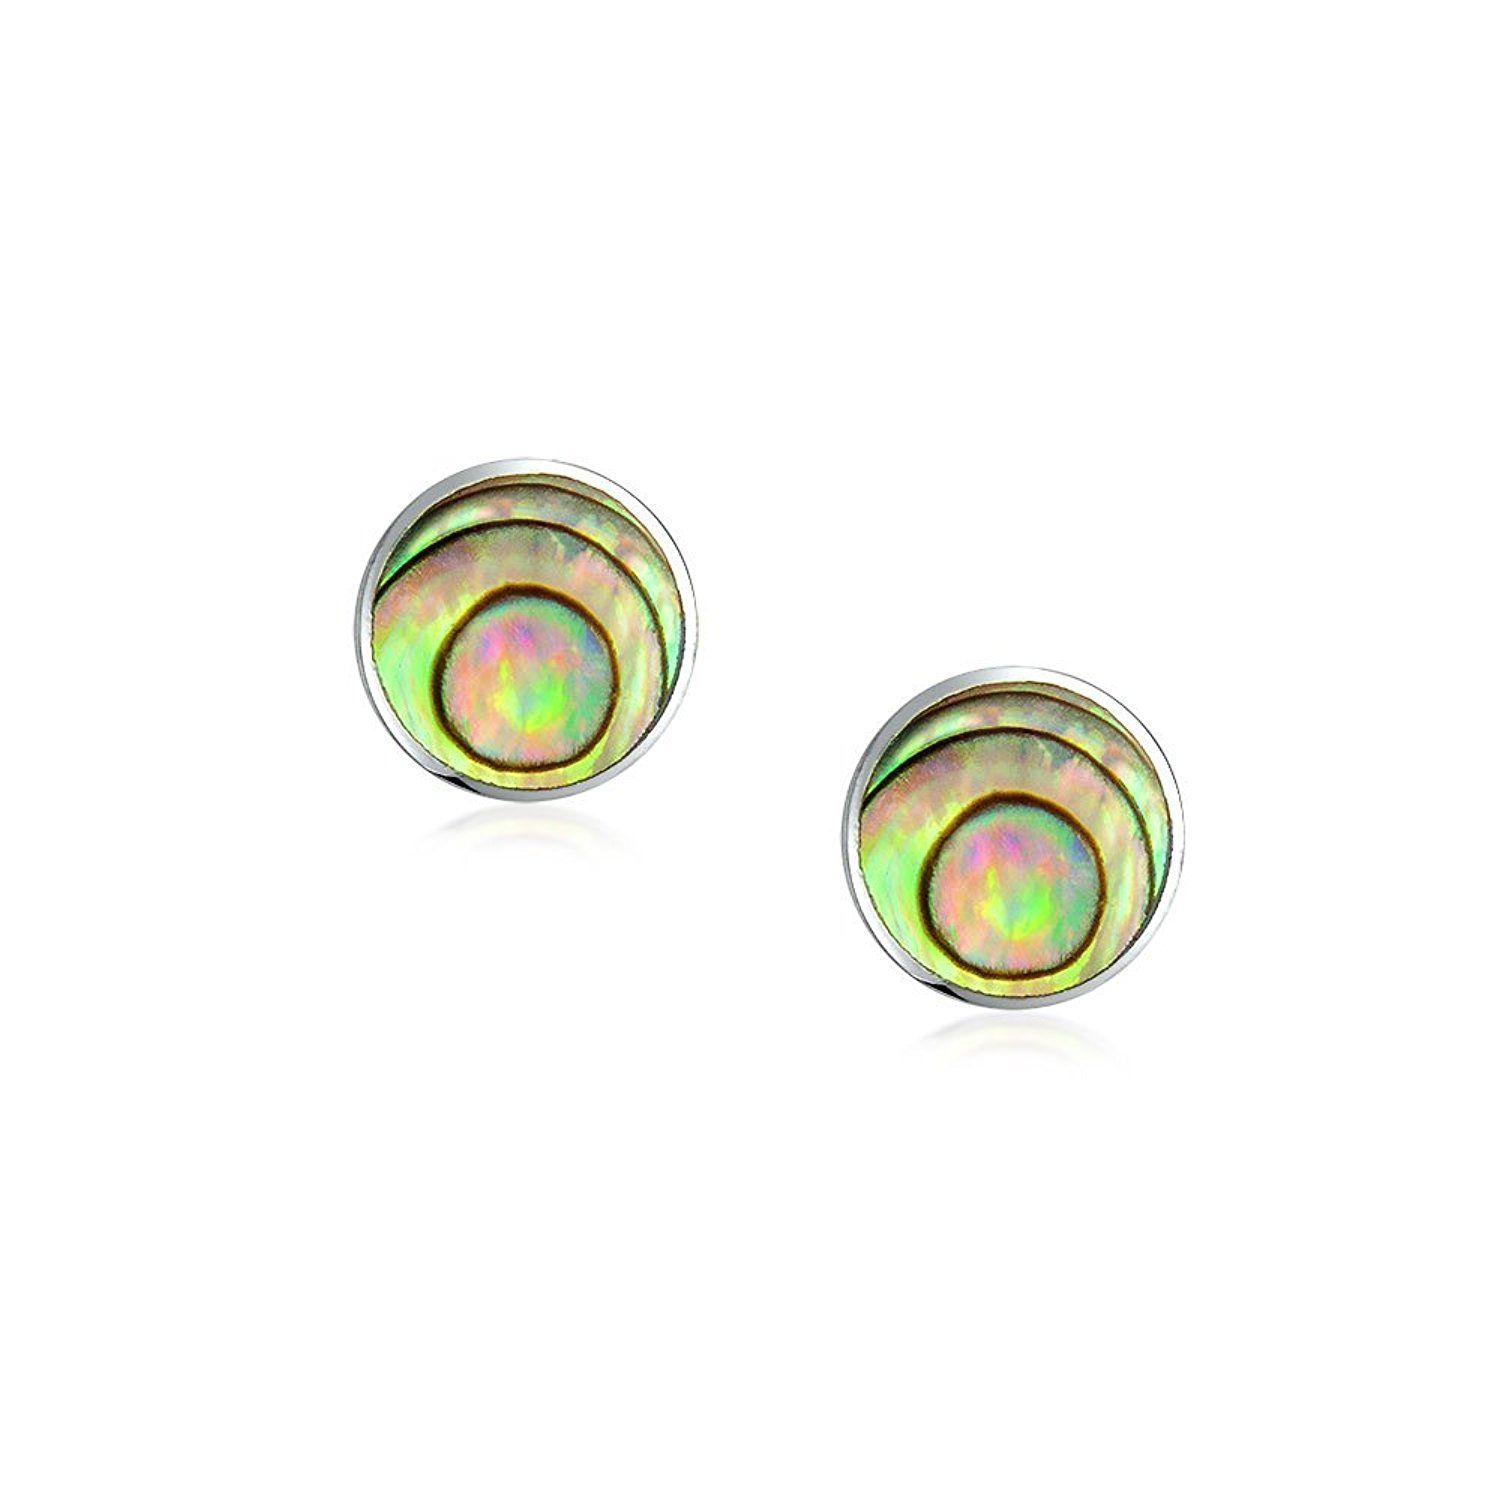 prep tatiana colors abalone available products img earrings studs stud obsessed